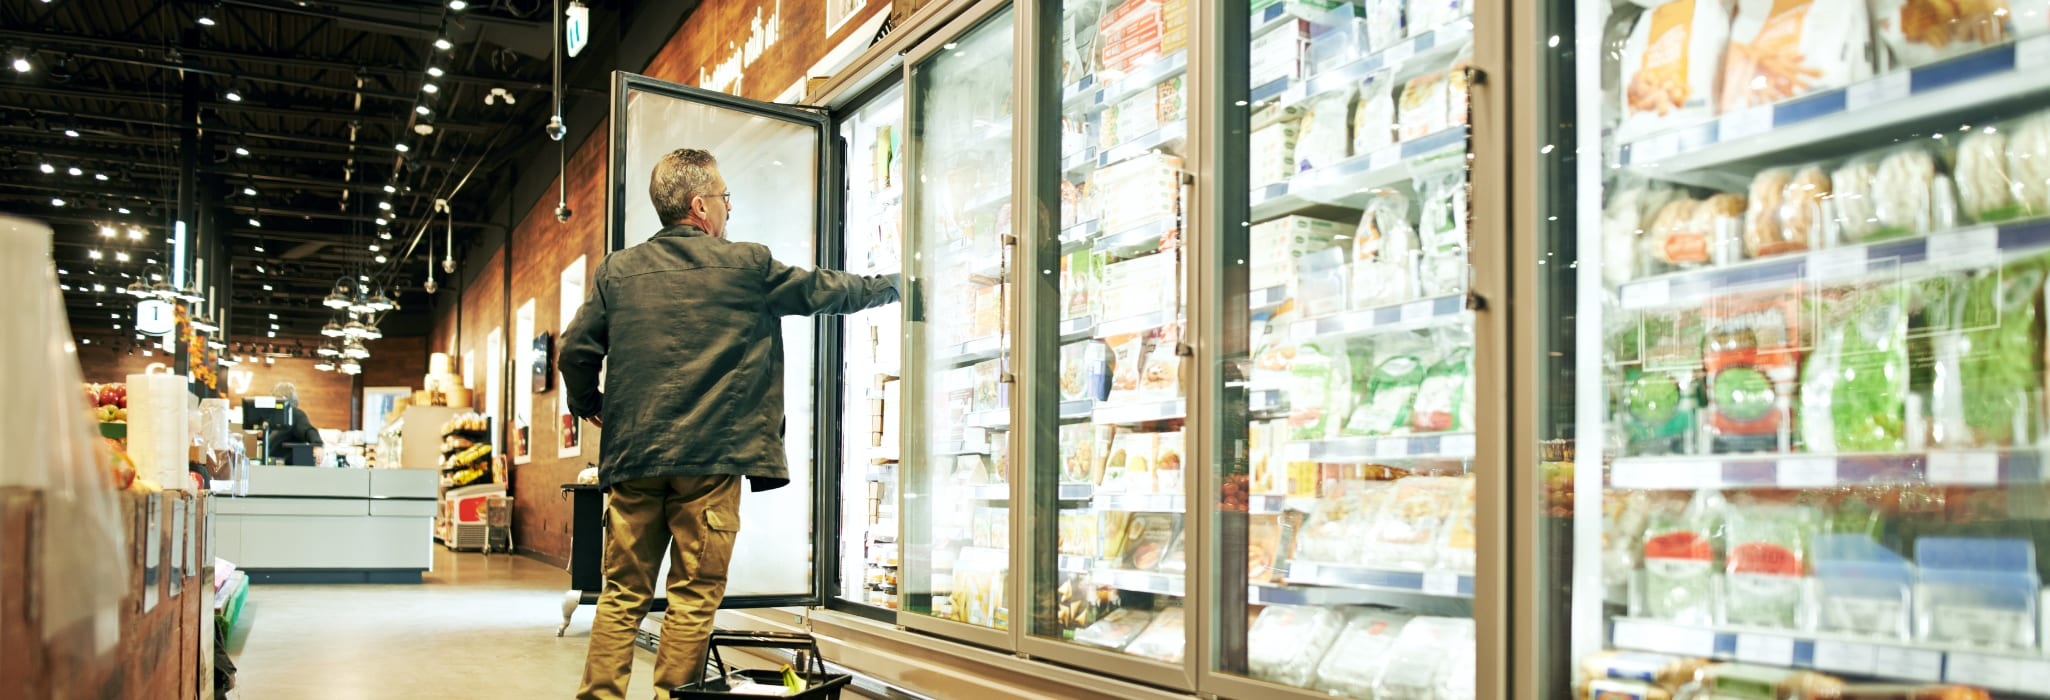 Commercial refrigeration service.